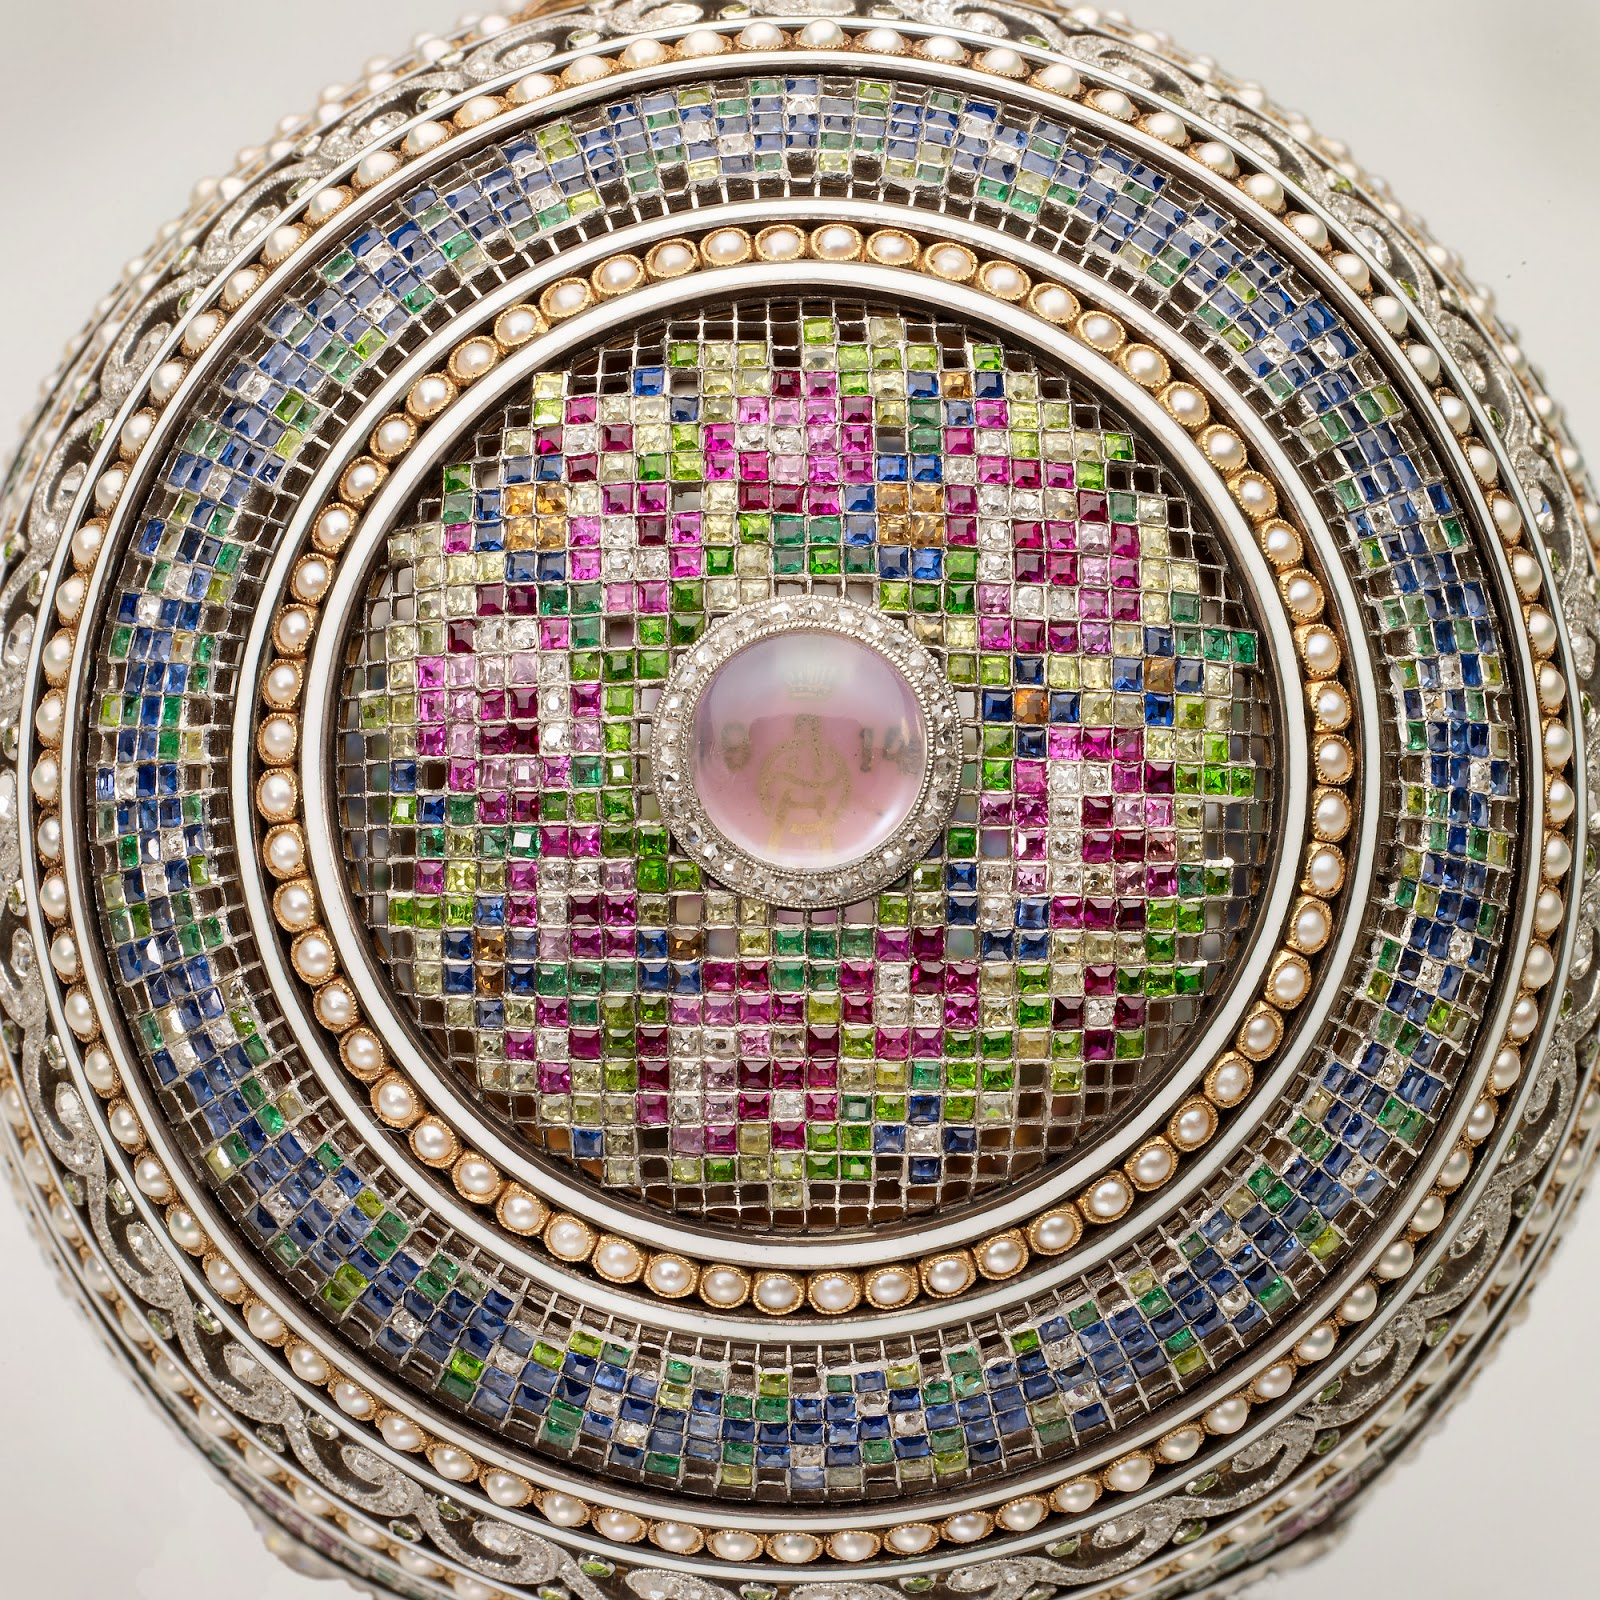 Stalking the belle poque mastery of design the faberg for Egg mosaic design